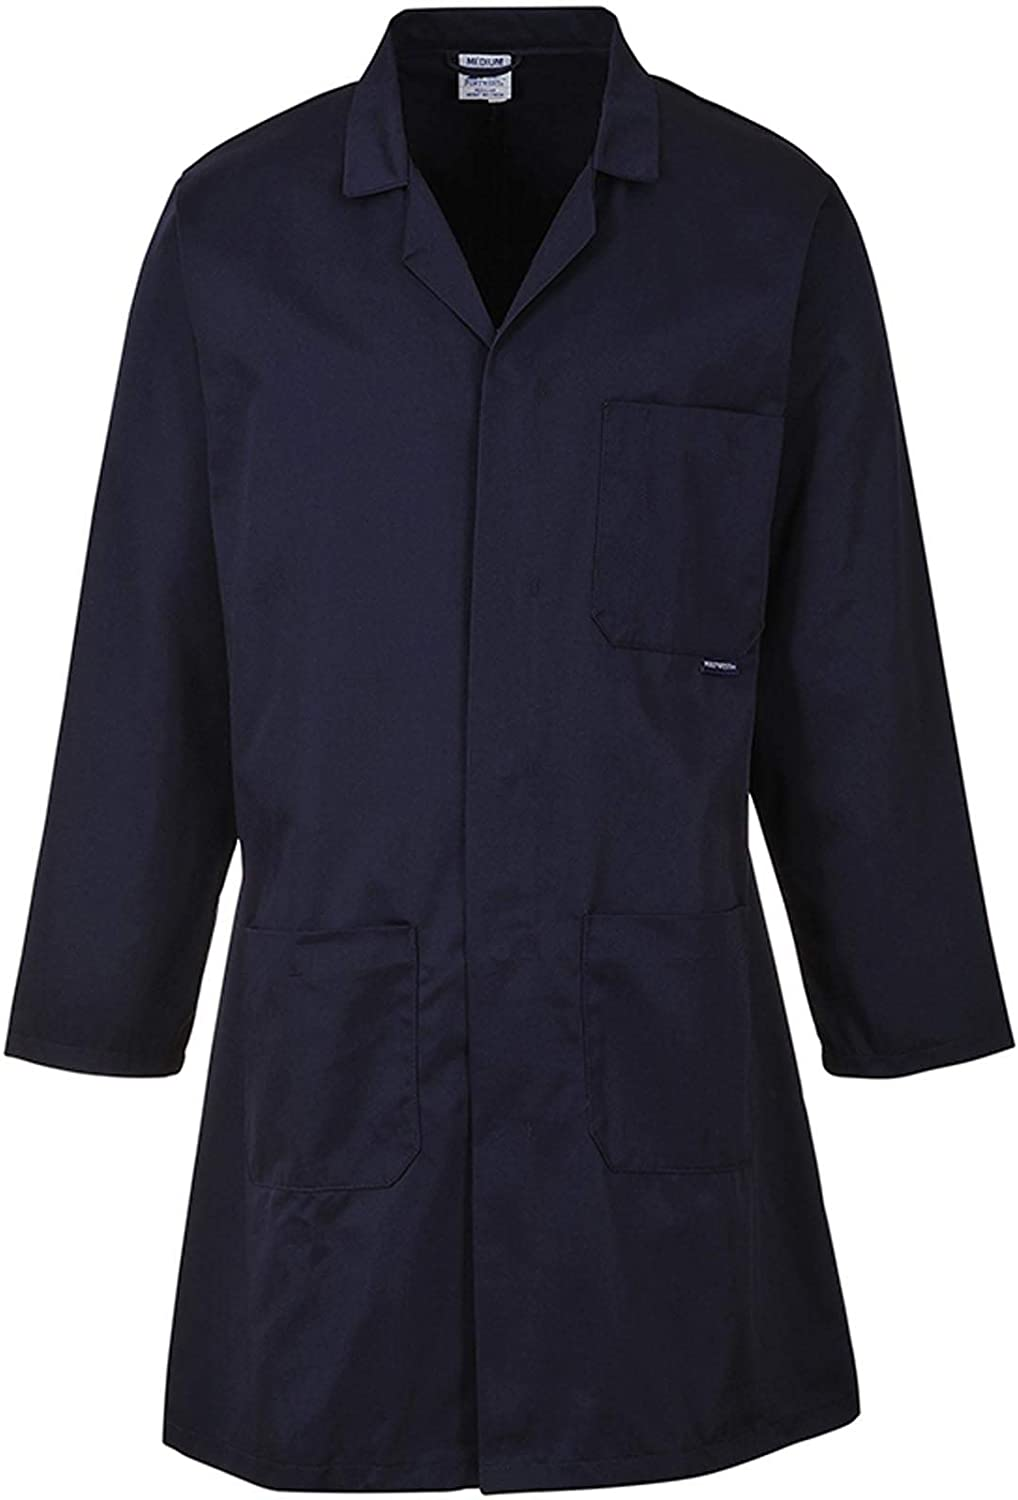 2852 Blank Plain PW175 Portwest Standard Coat